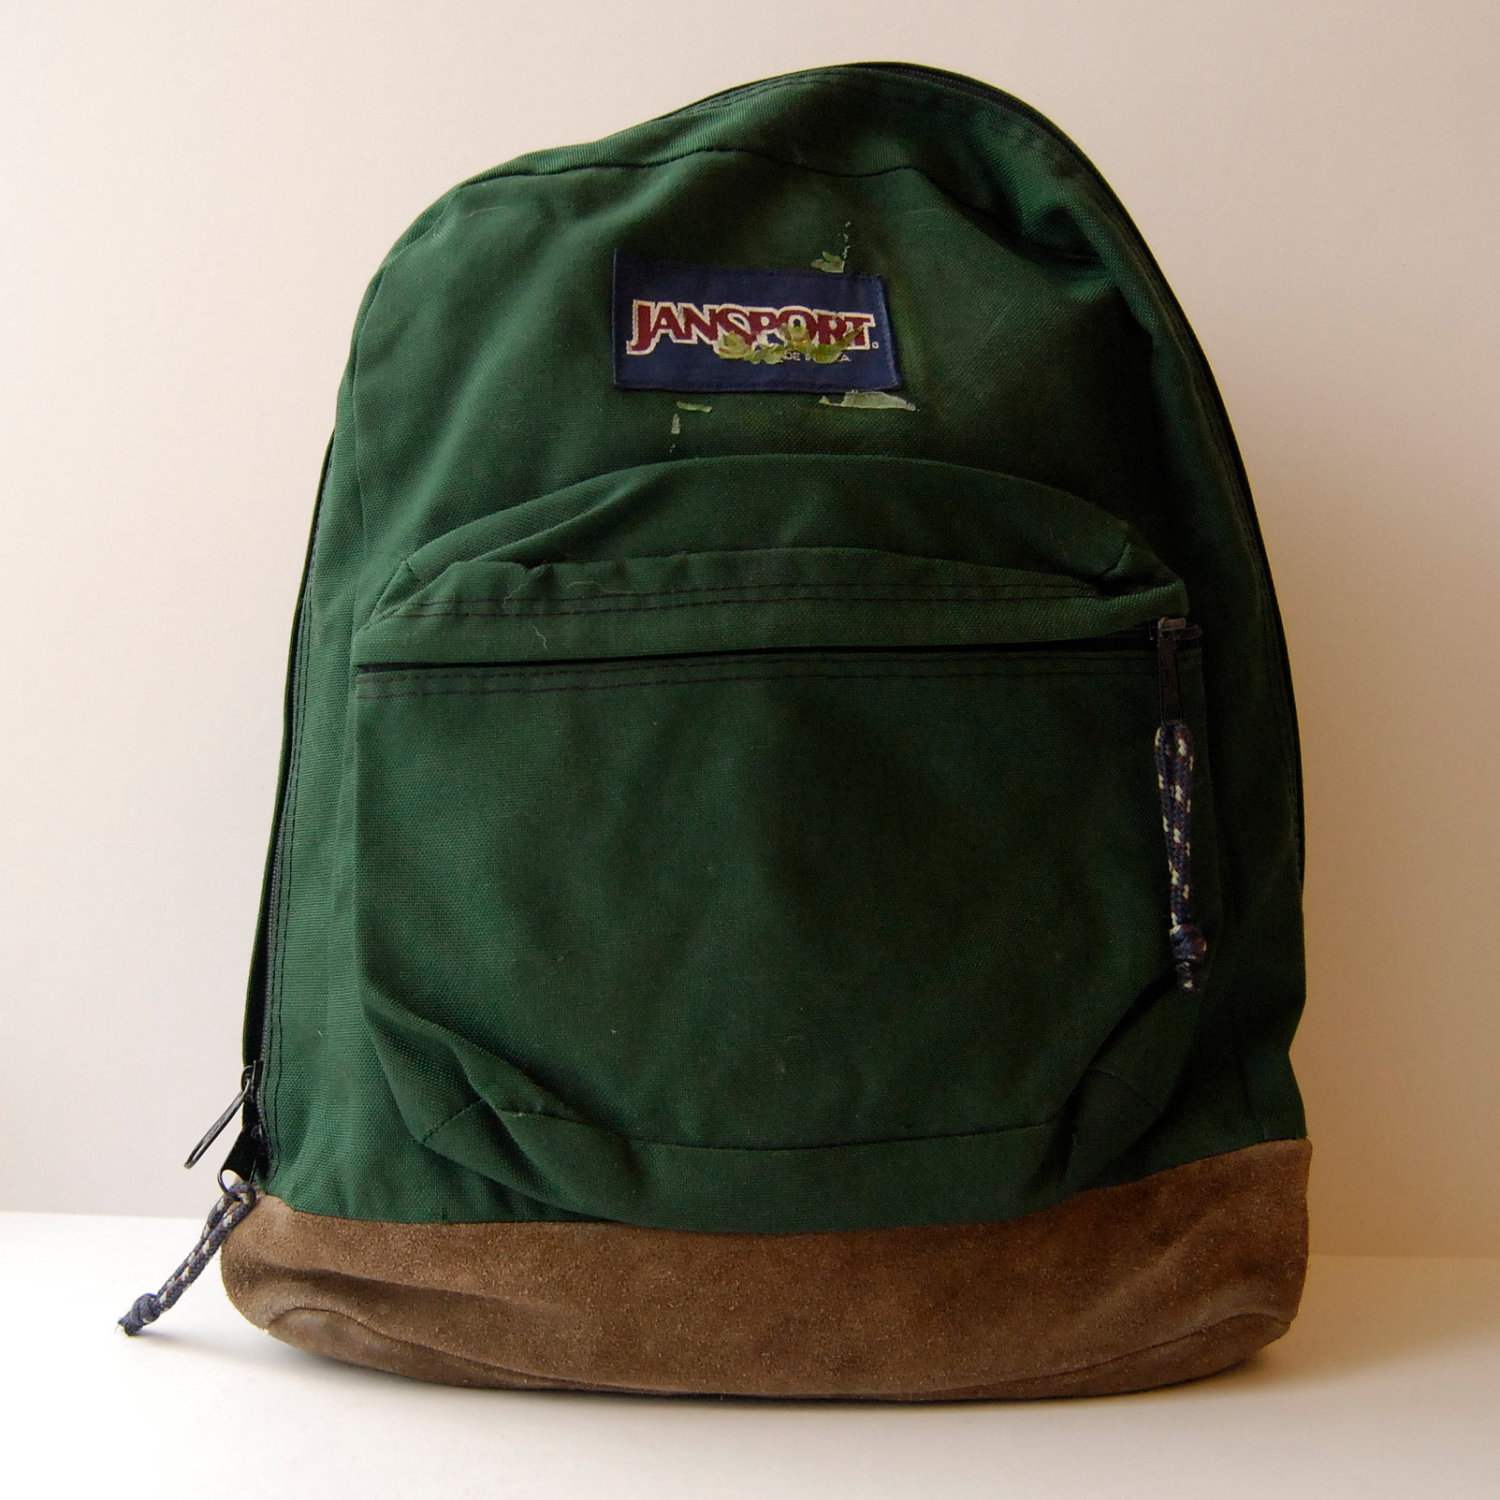 Jansport Green Backpack ZtHbSHv3